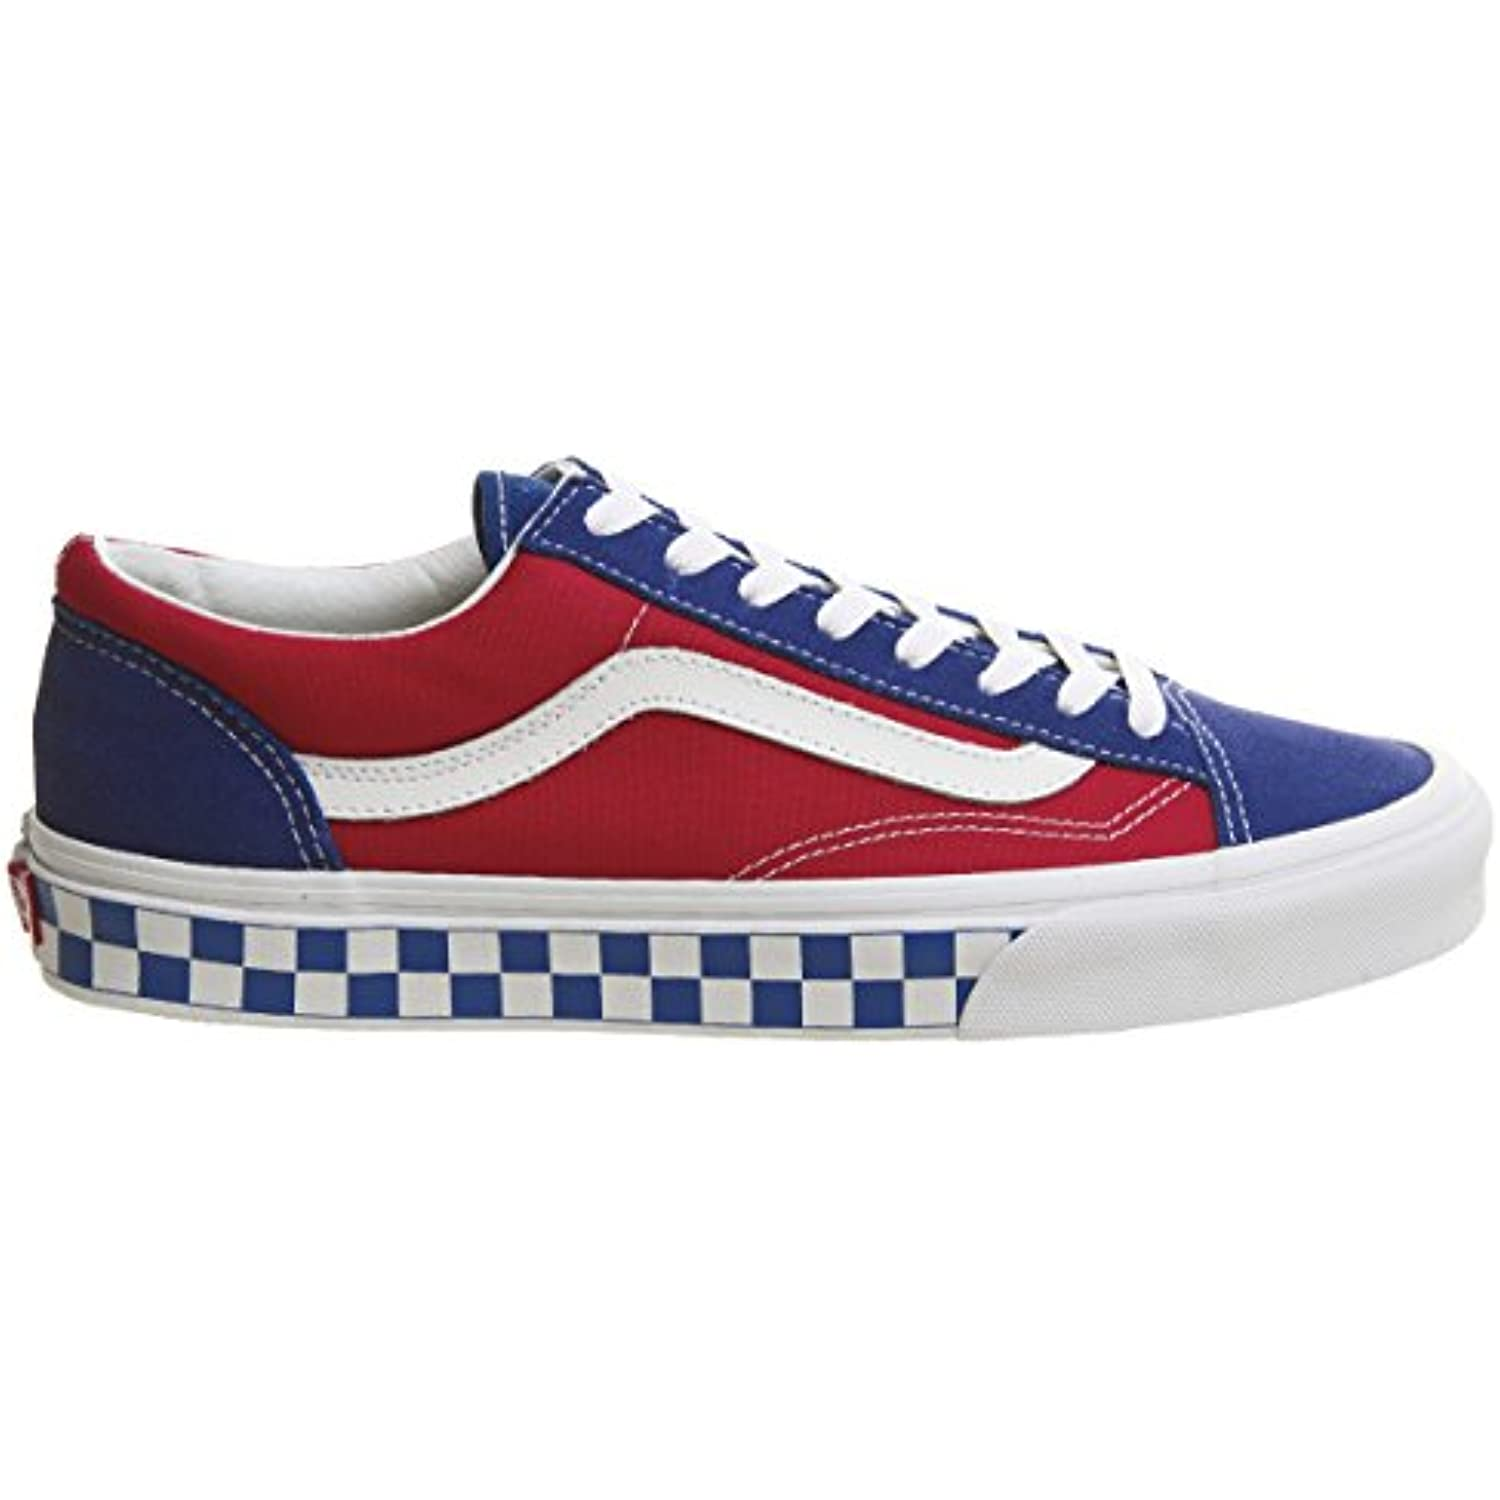 Vans Style 36 -Fall 2018- True Blue/Red -